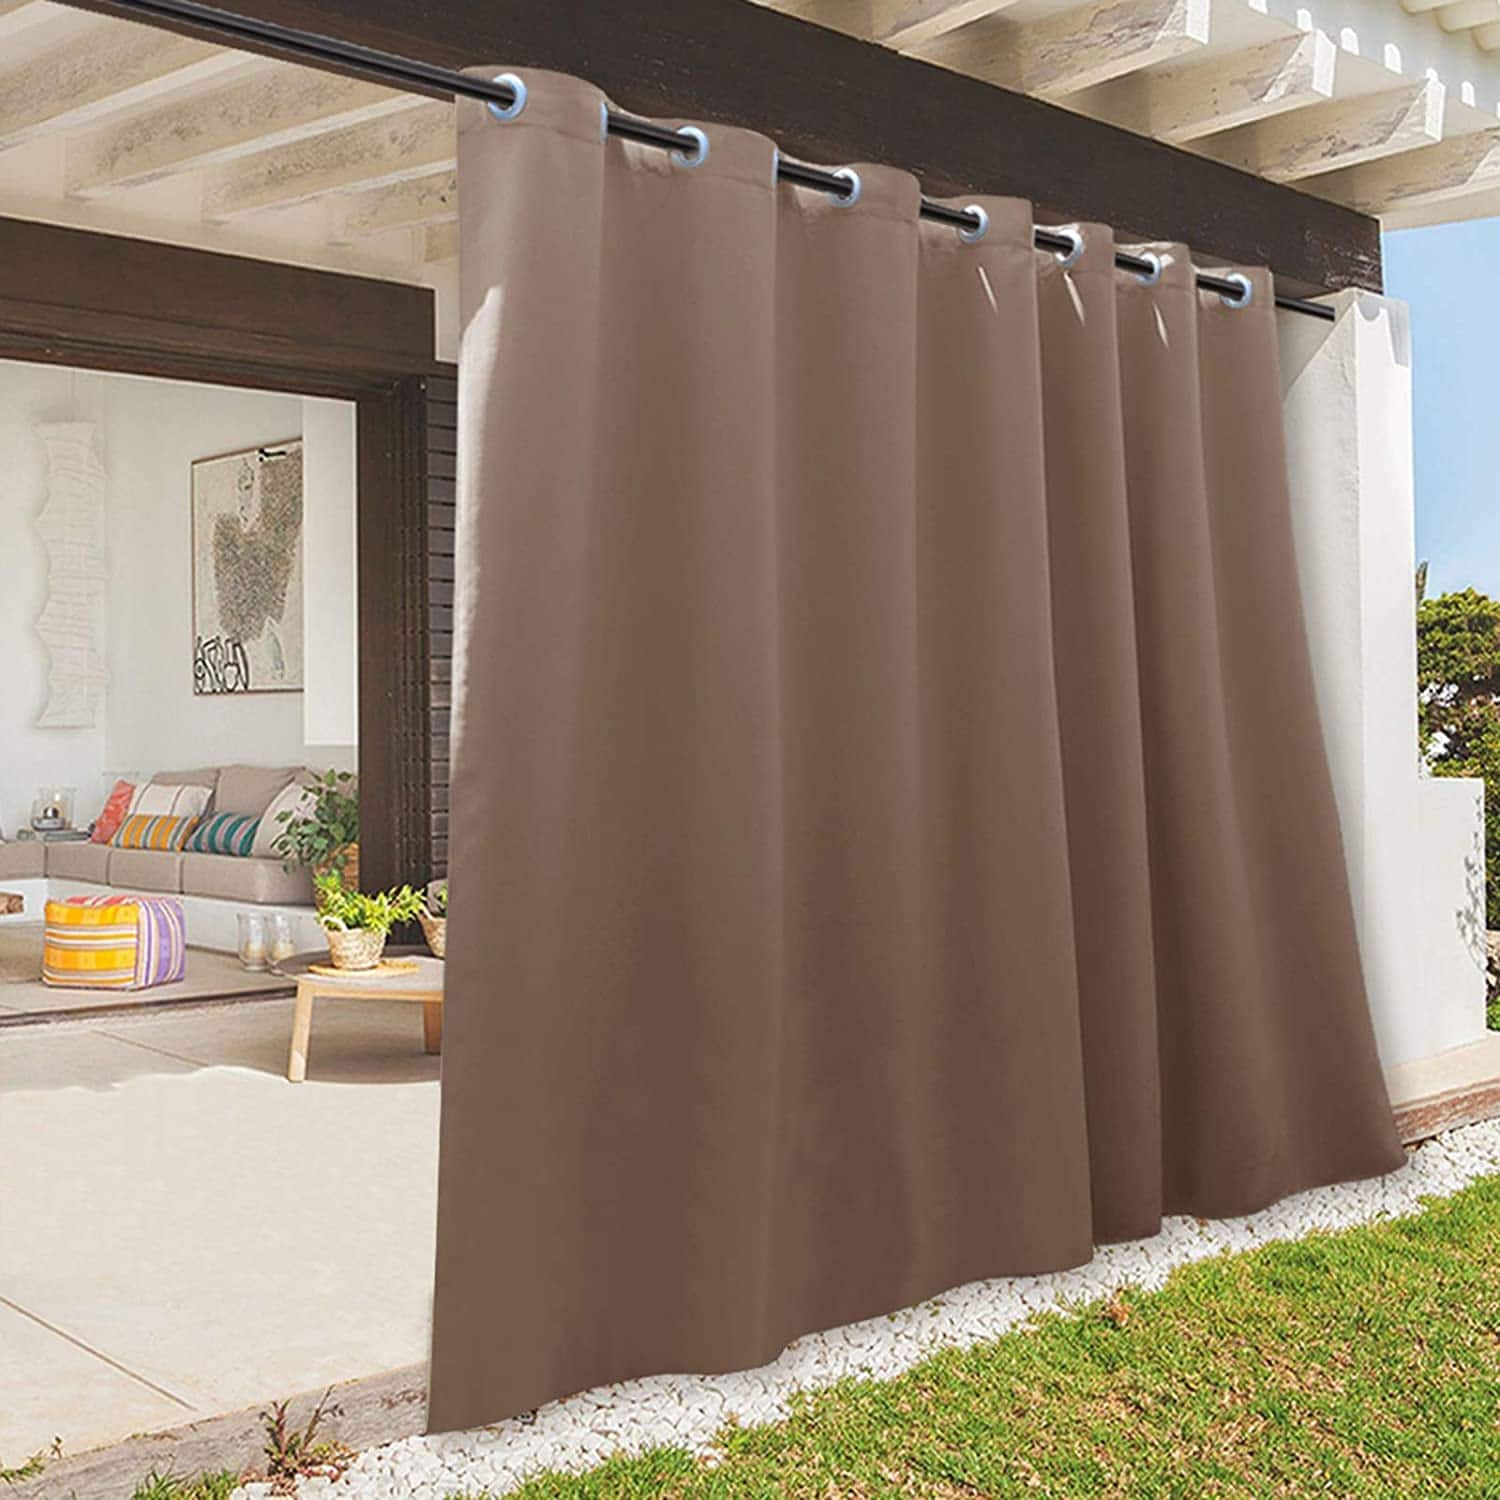 Prime Members: 100 x 108 inch. RYB HOME Outdoor Gazebo Curtains, Waterproof Weather Resistant $5.69